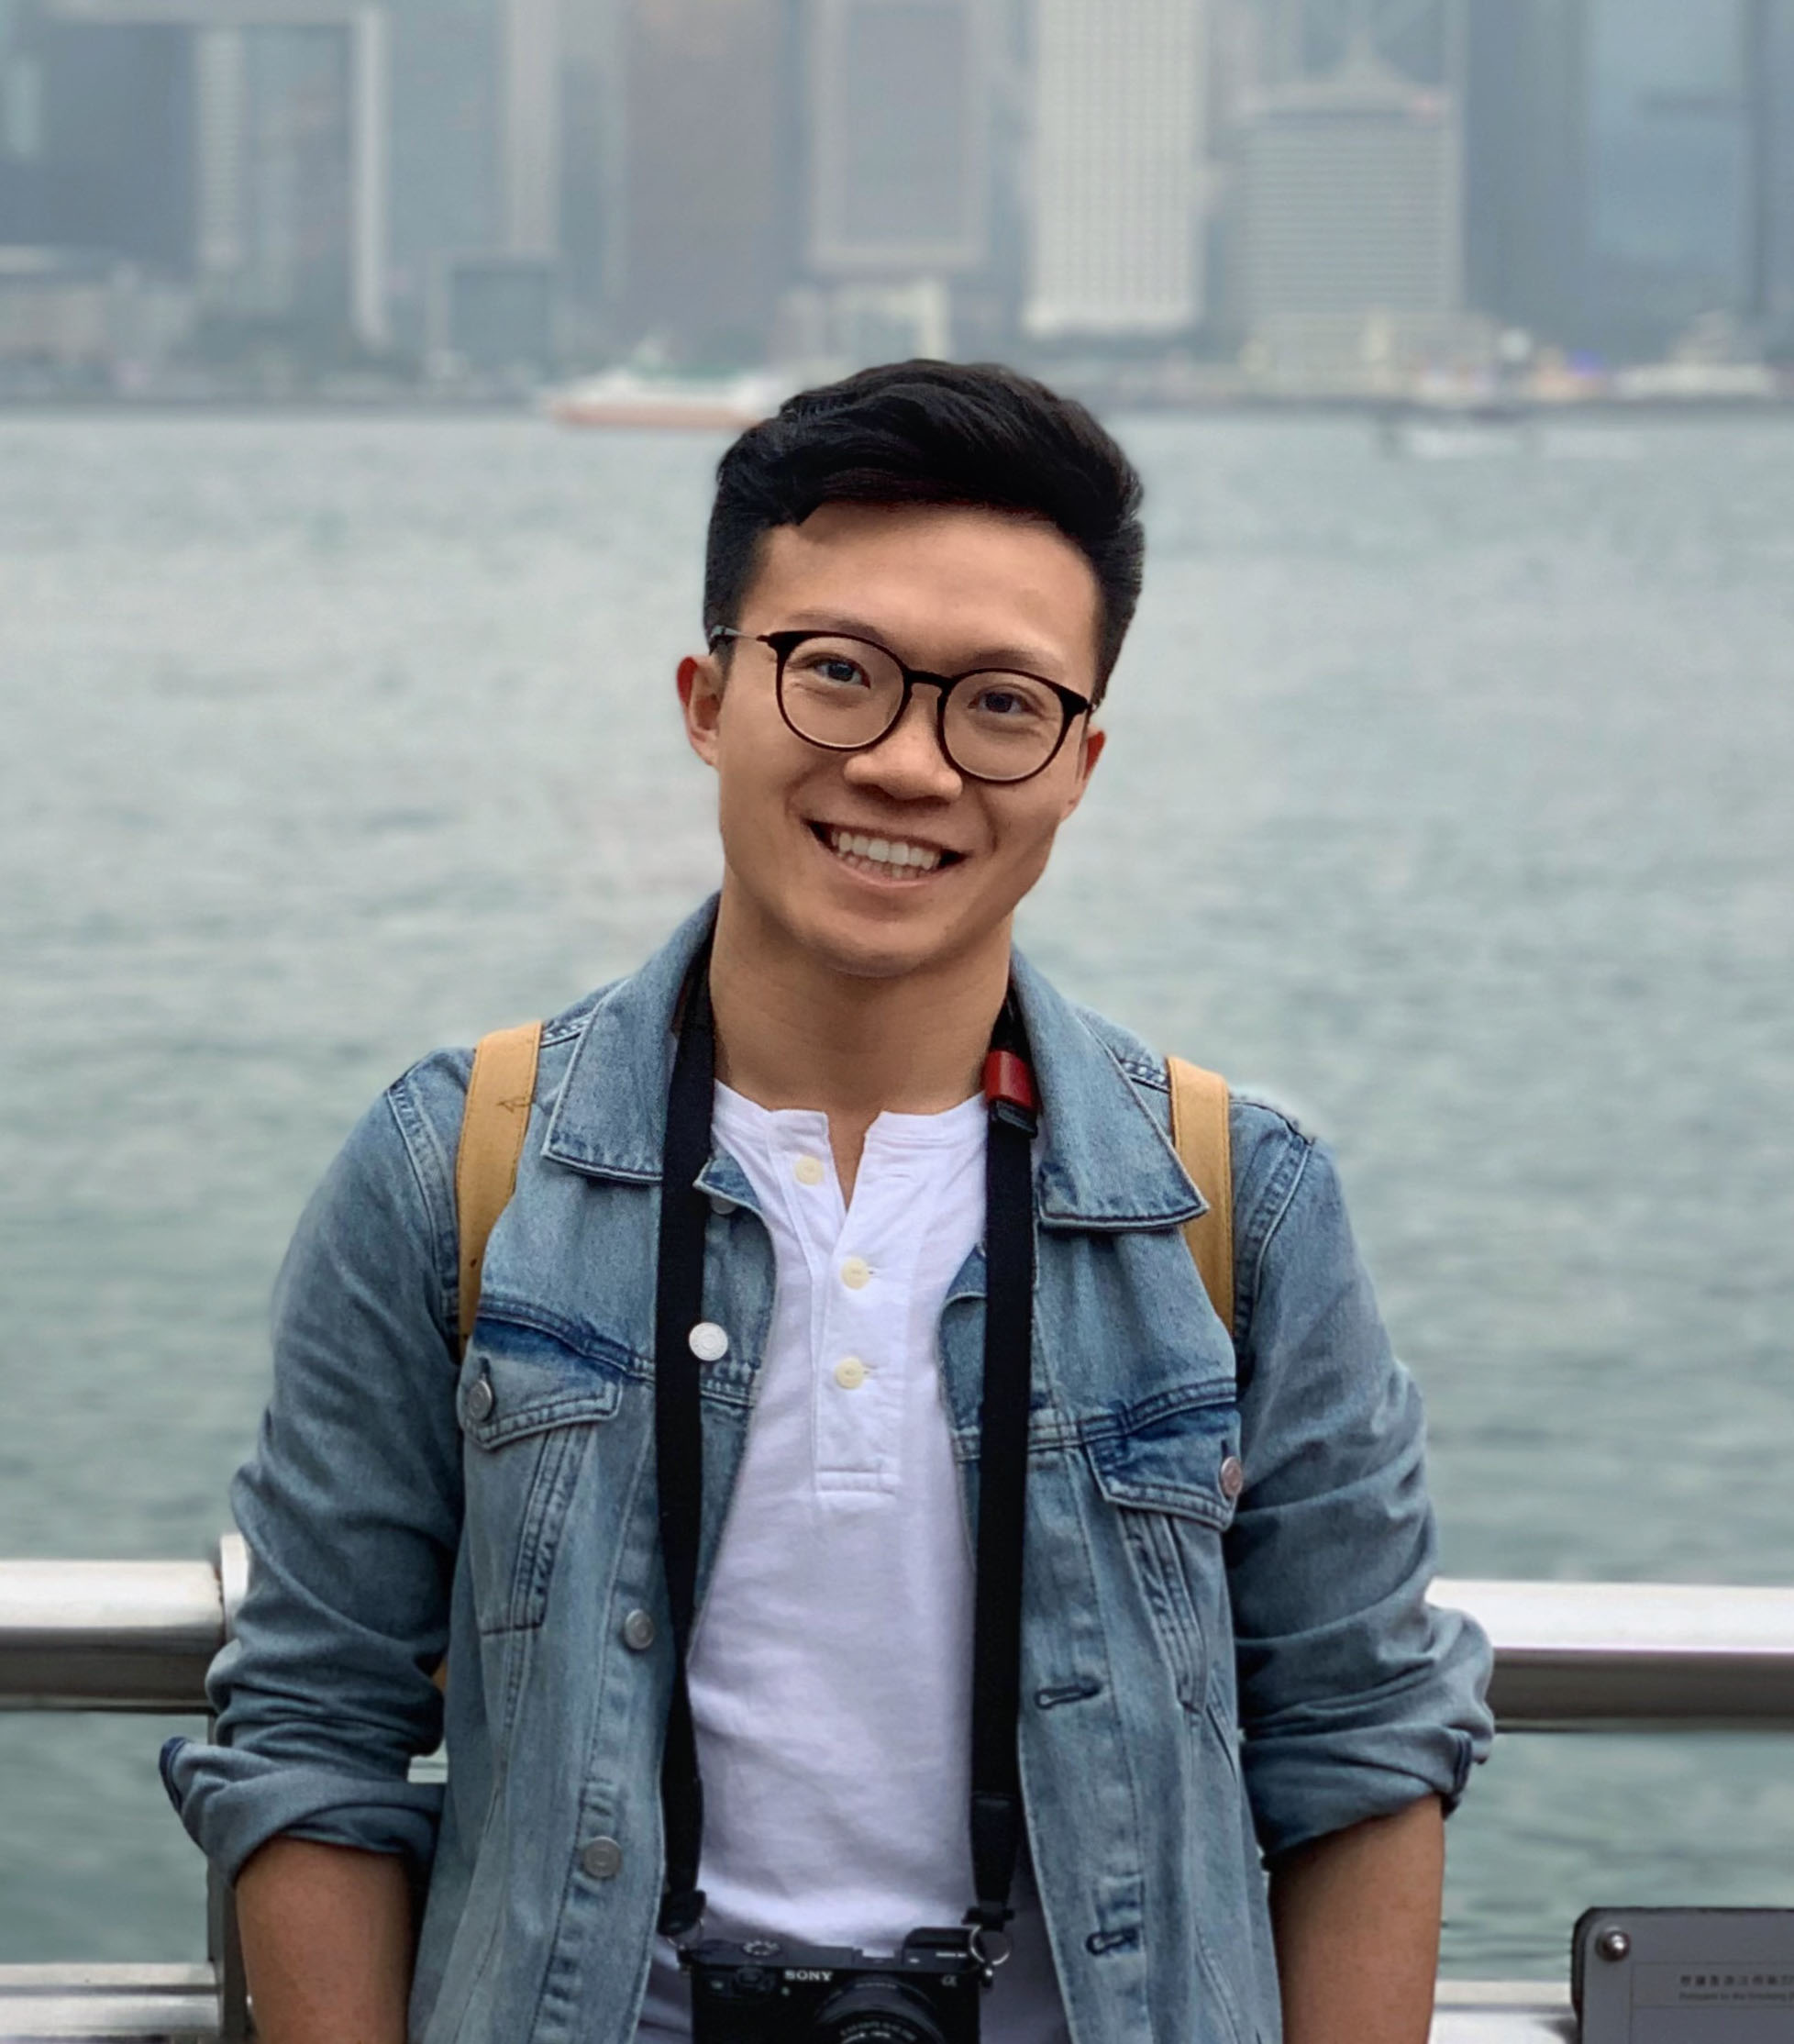 Photo of alumnus Jiawei Xu standing in front of the Victoria harbour in Hong Kong